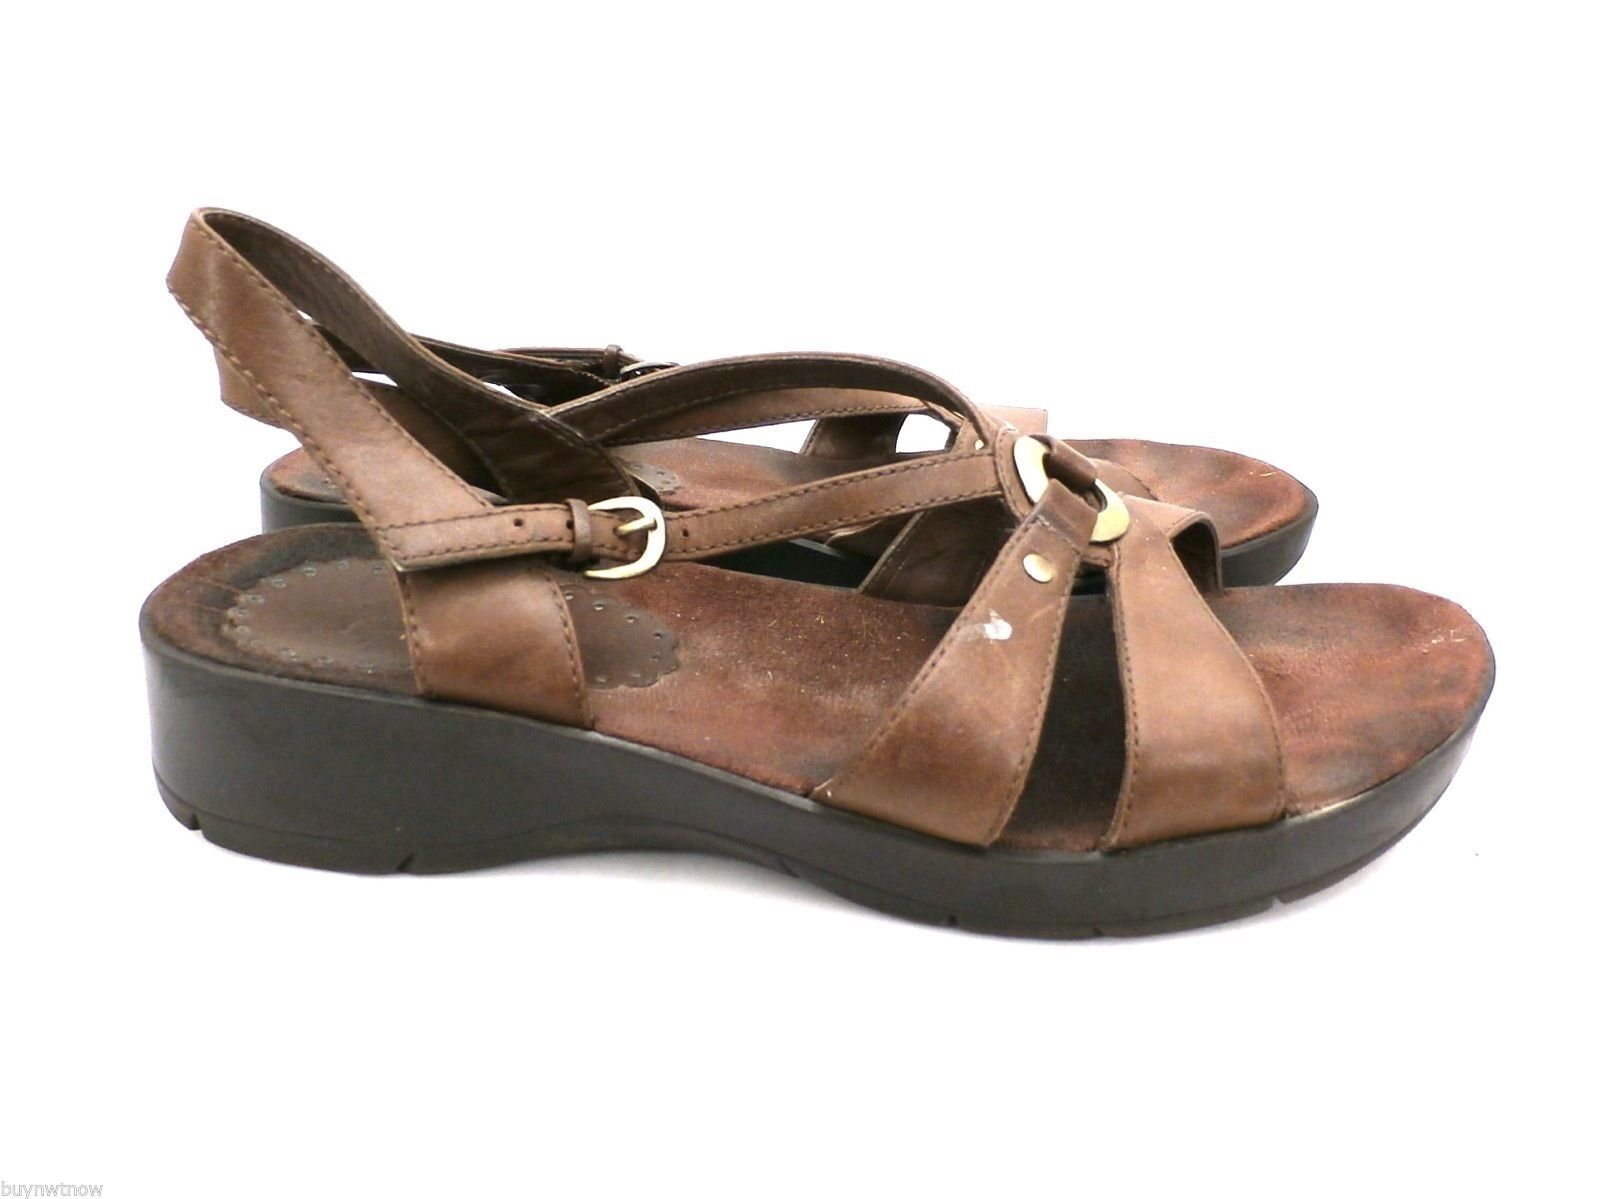 Womens Wear Ever Brown Leather Sandals Comfort Ostep 8.5 M image 2